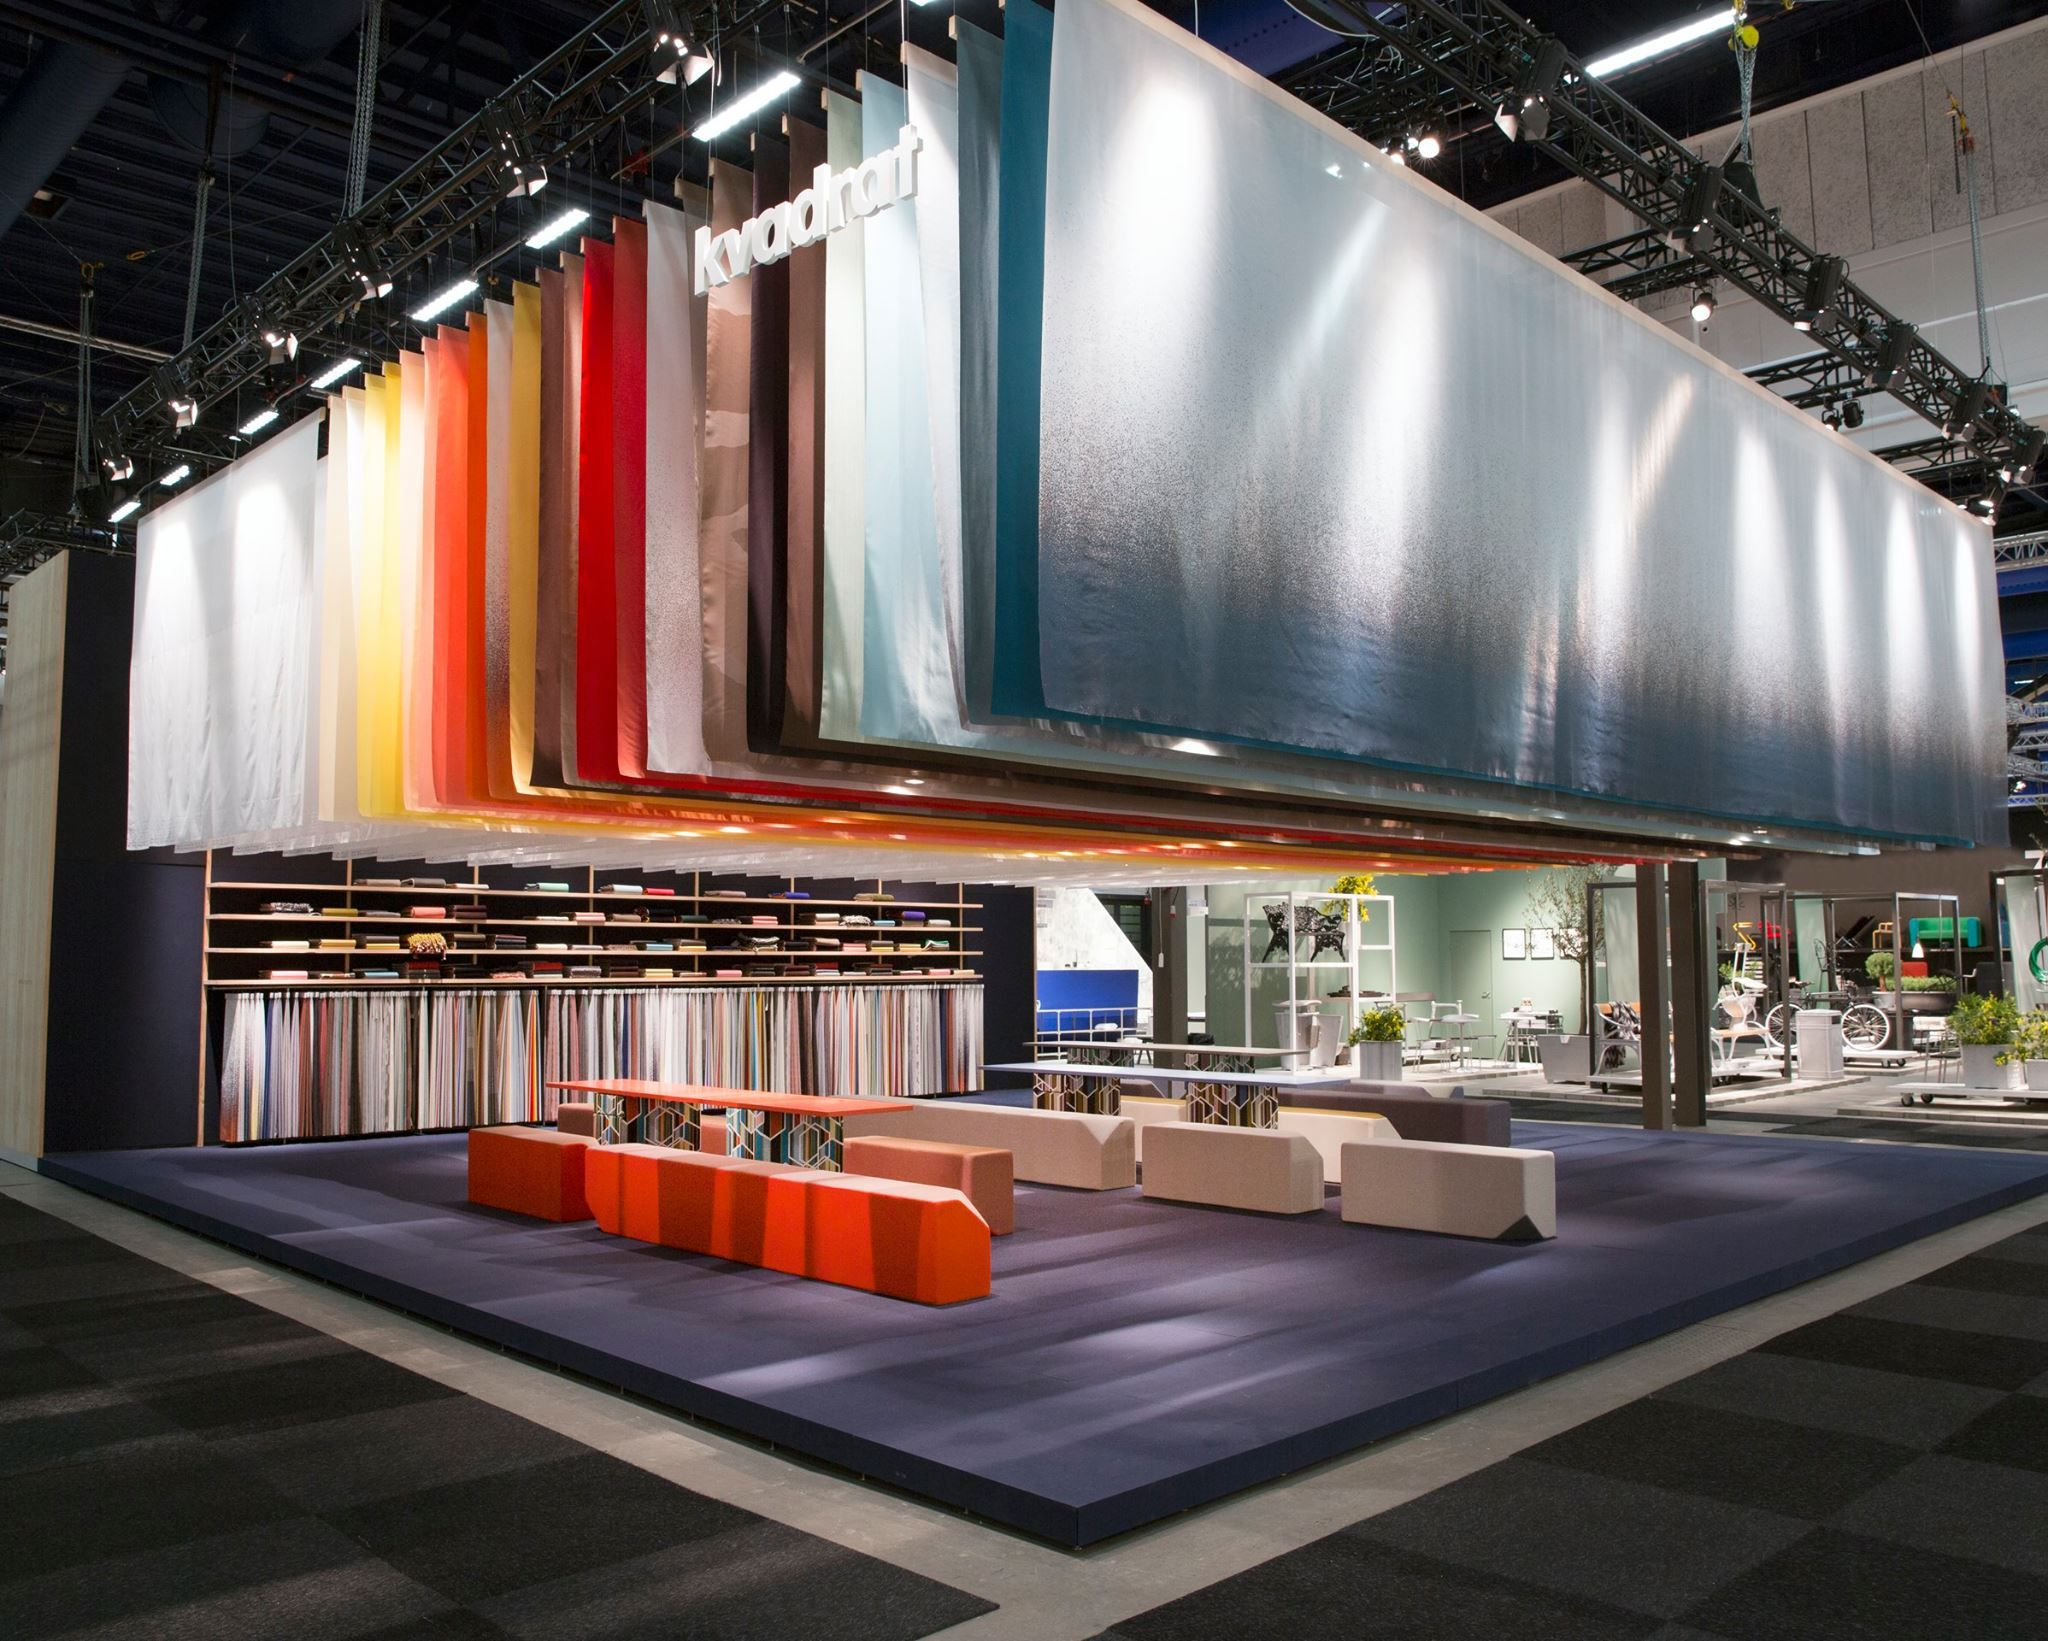 Fabric Exhibition Stand Zones : Kvadrat stand stockholm design week # 2015sff # 2015sdw